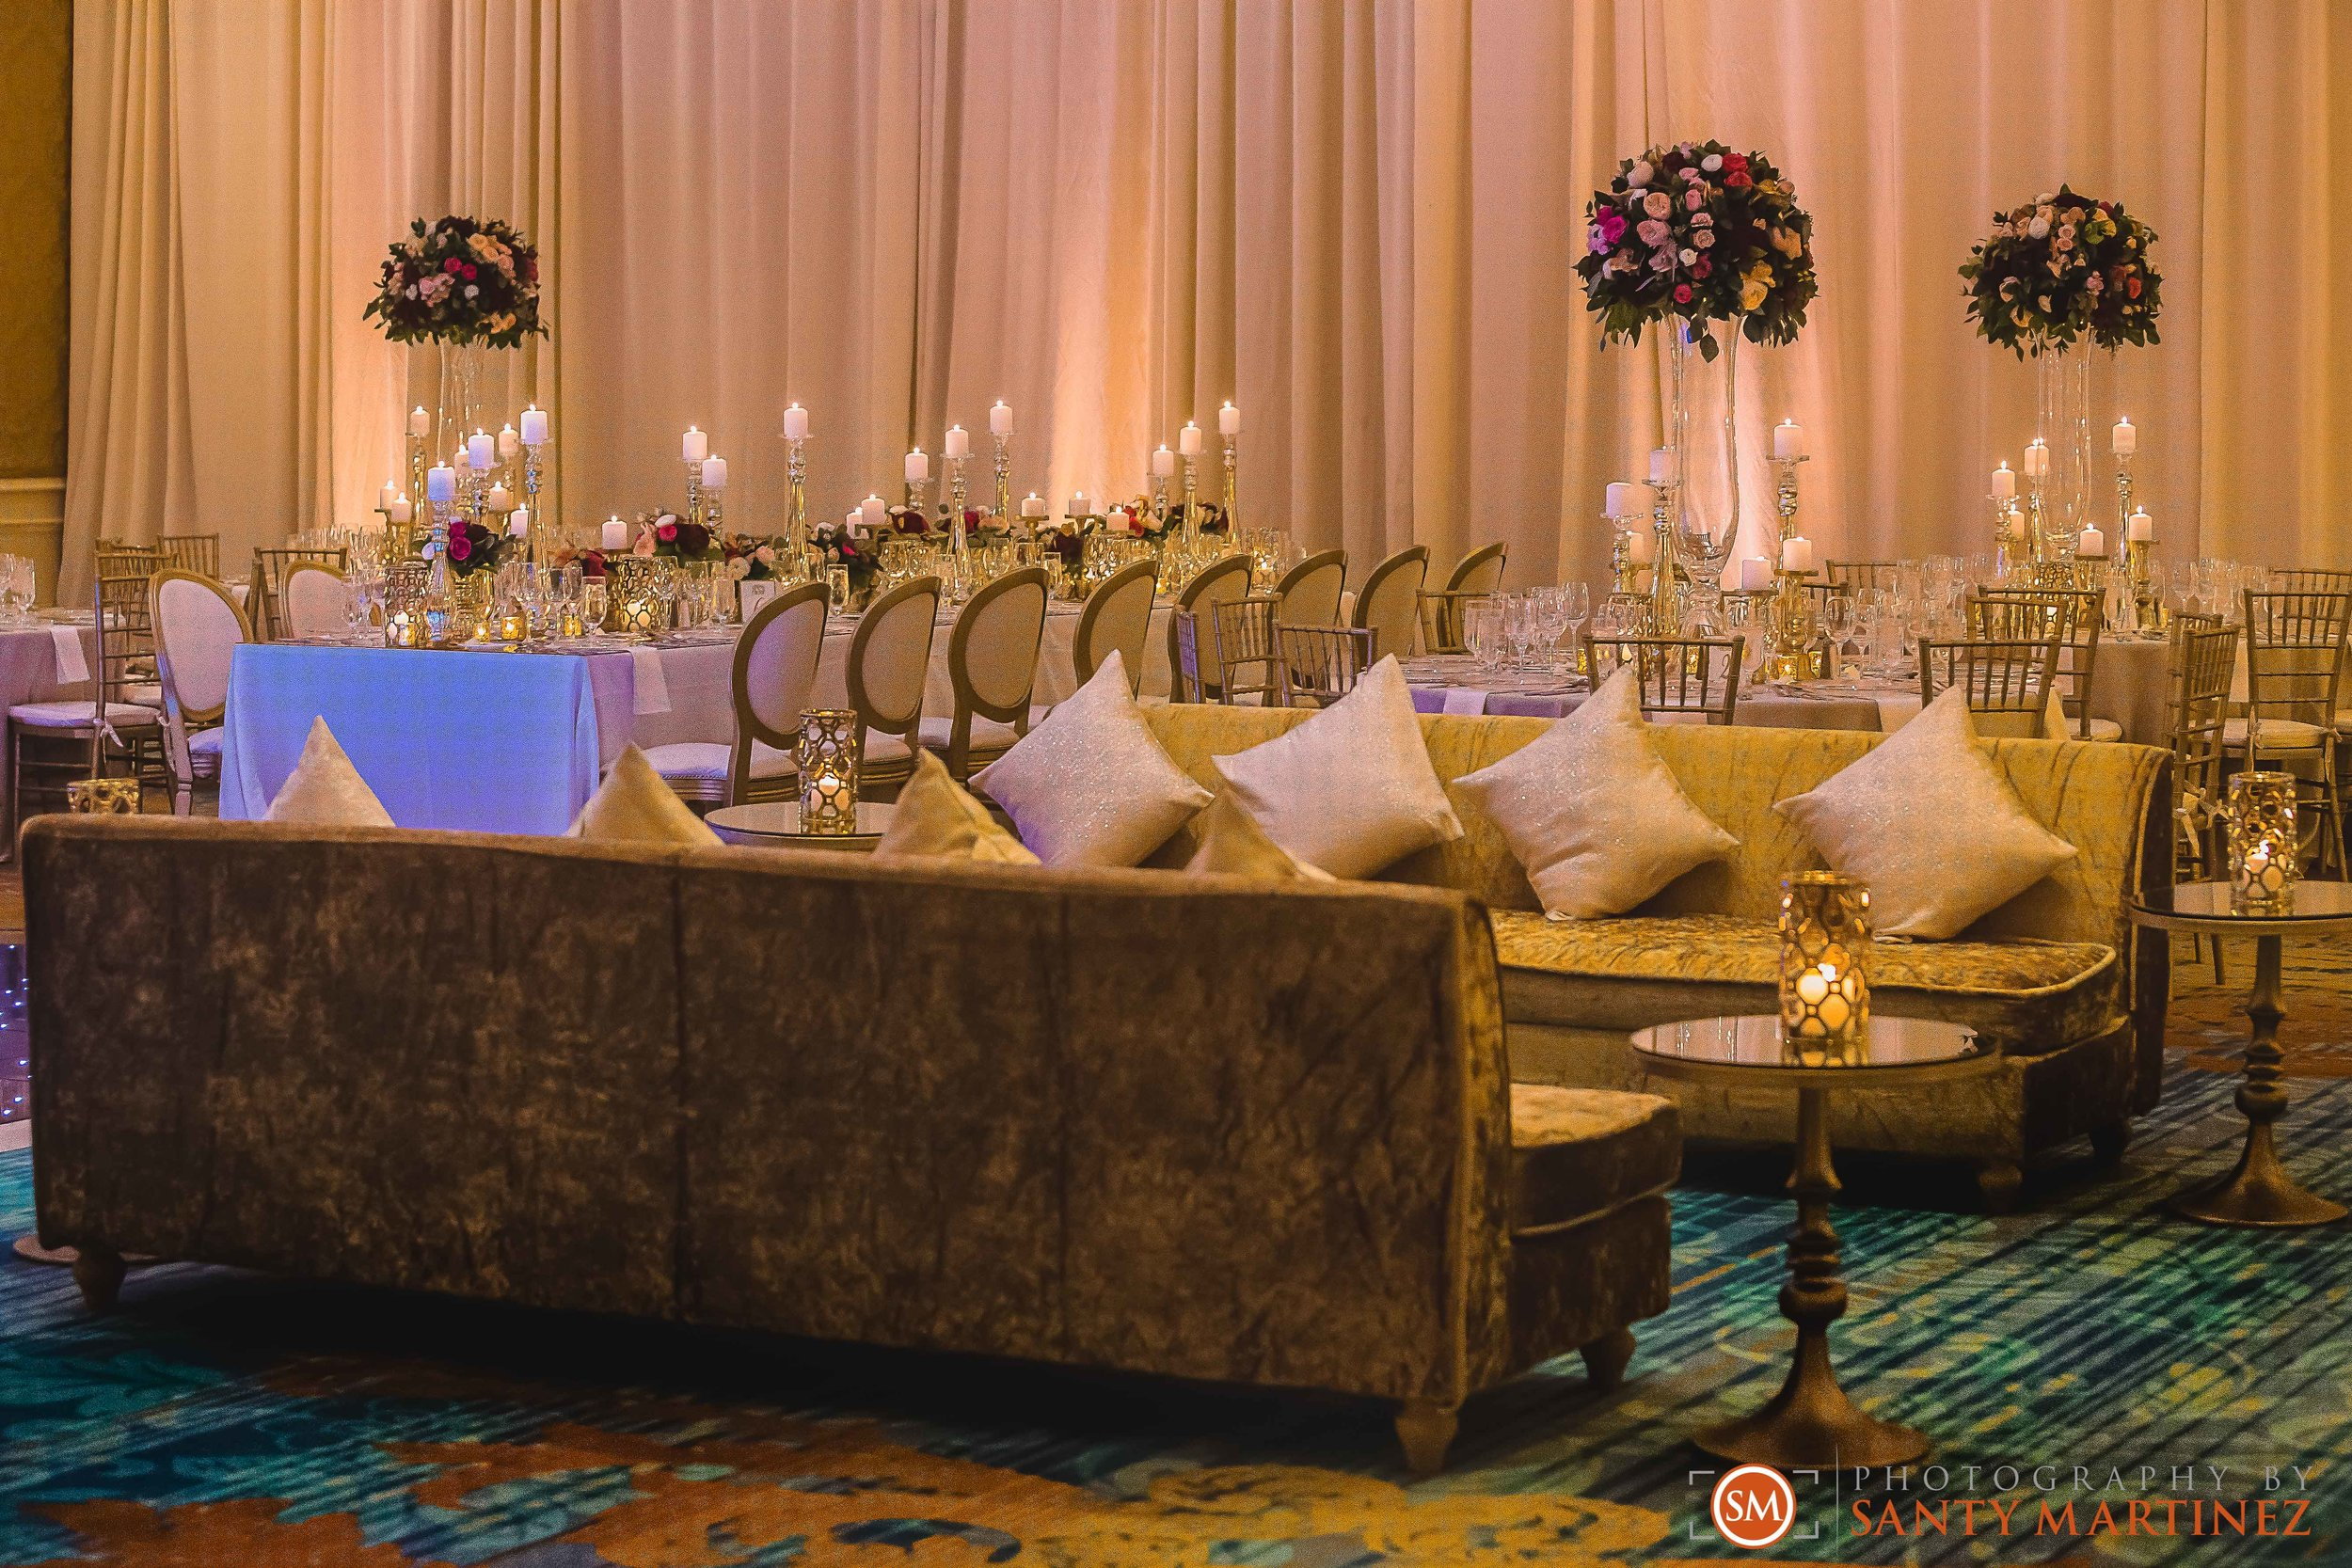 Wedding Ritz Carlton Coconut Grove - Santy Martinez-33.jpg